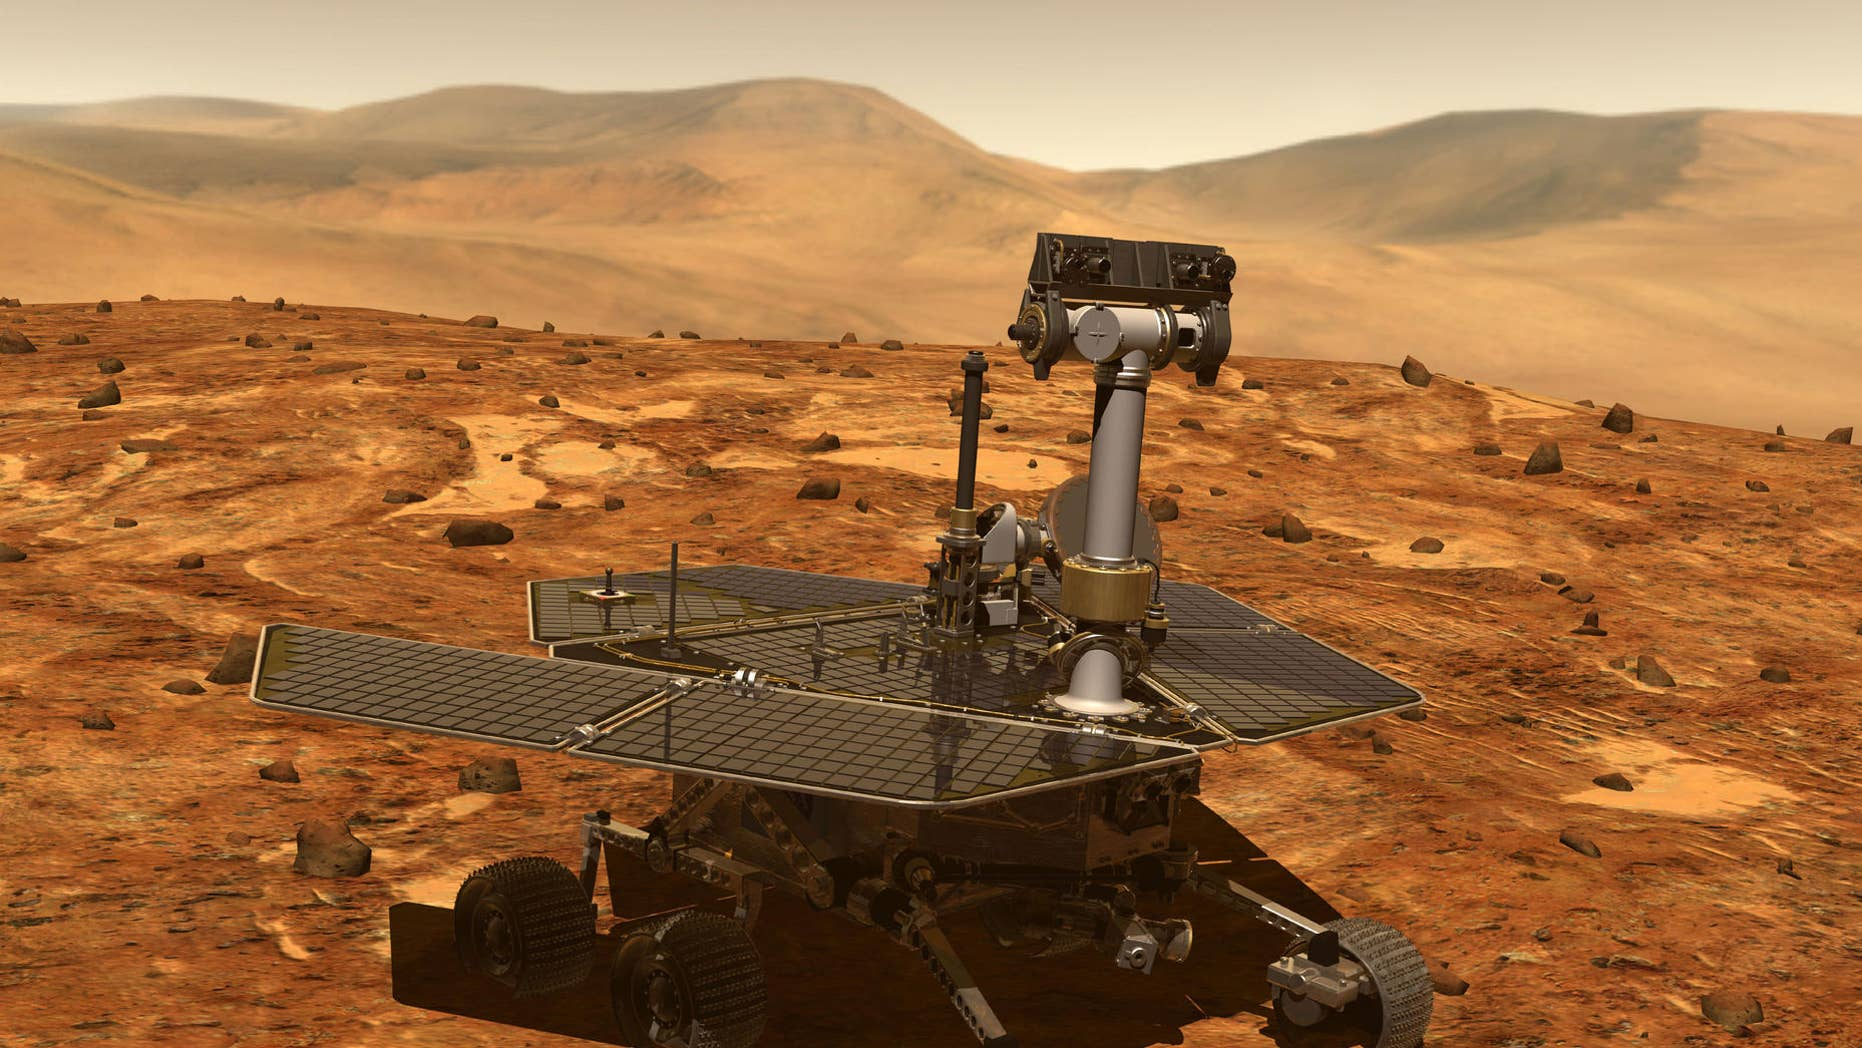 NASA Curiosity Mars rover wraps up Vera Rubin Ridge work